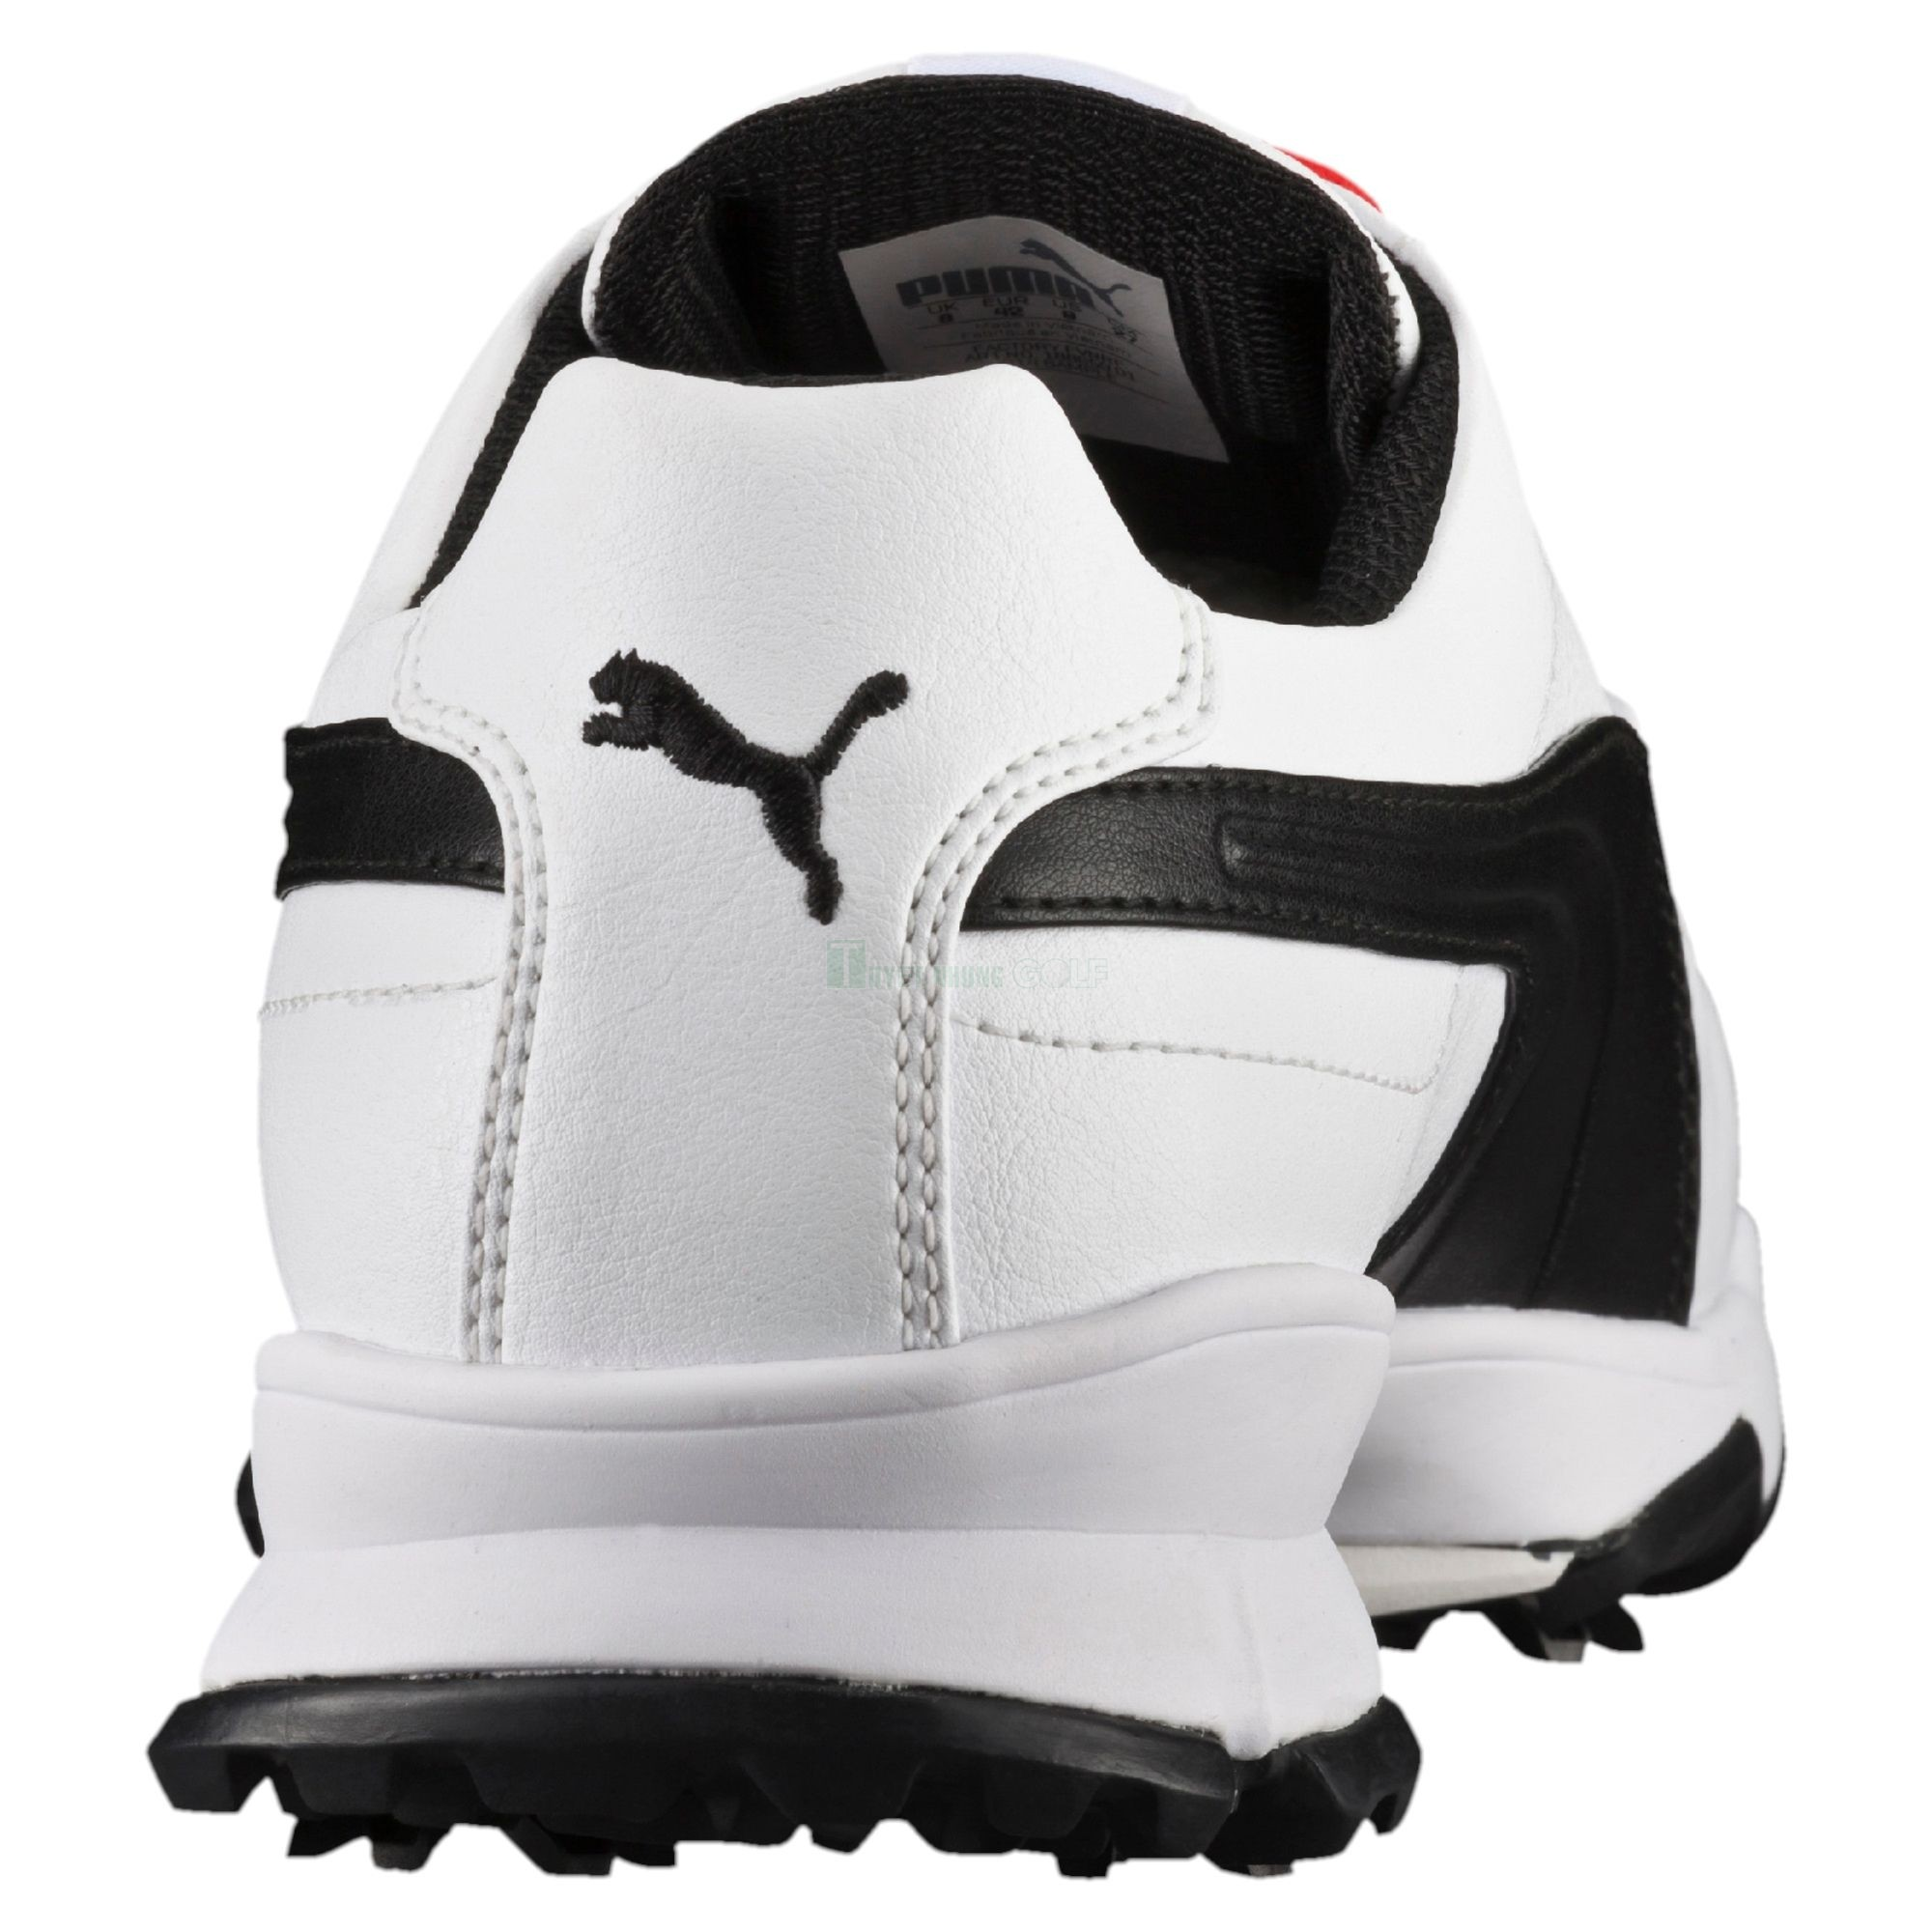 Giầy golf nam Puma ACE